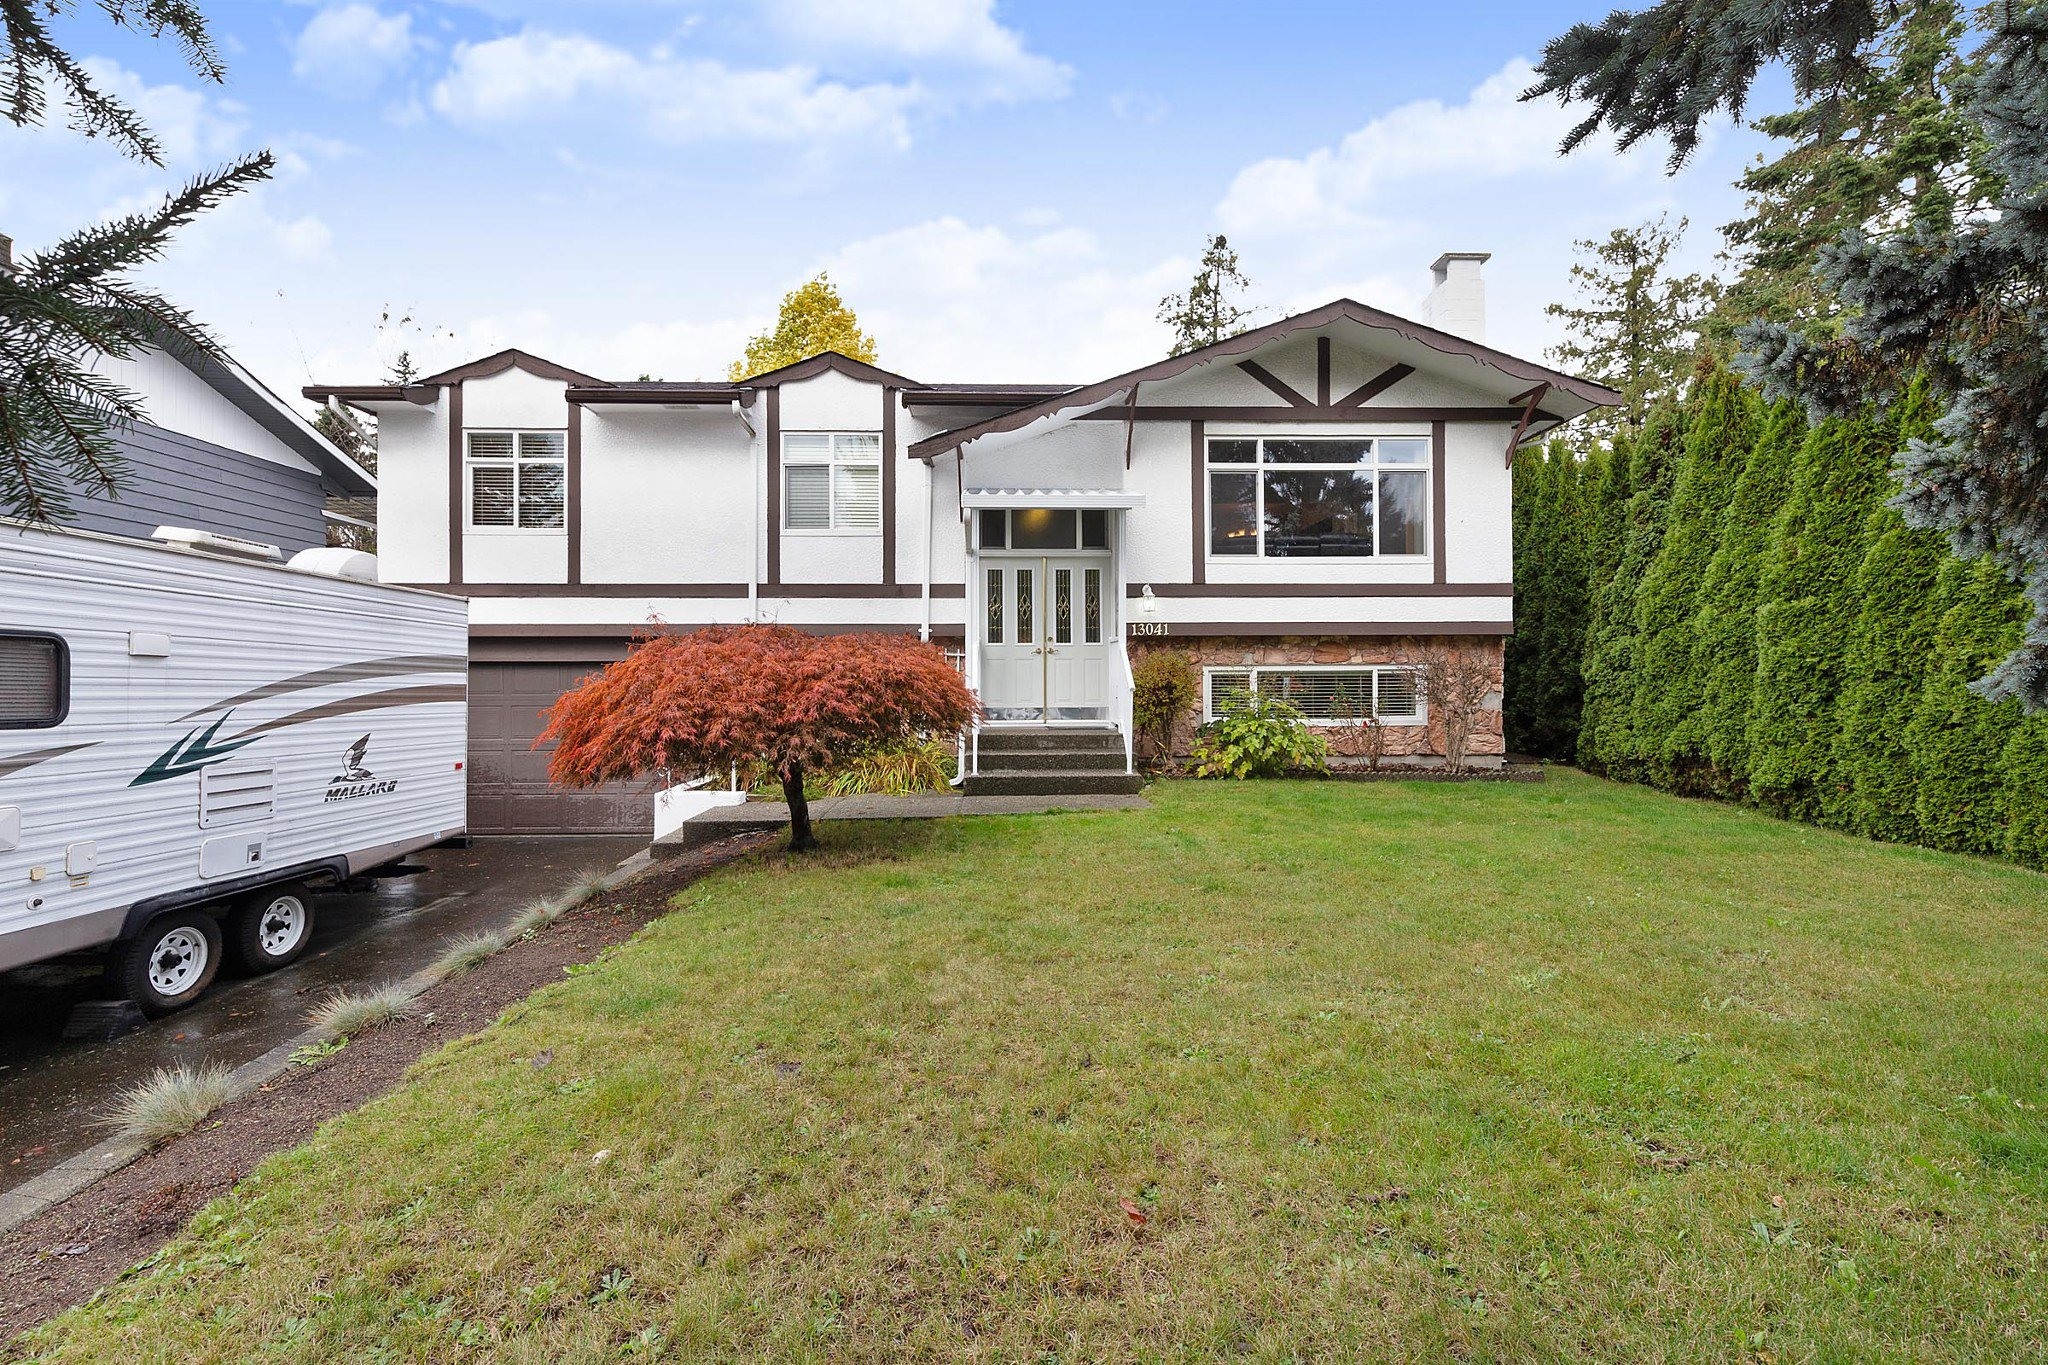 Main Photo: 13041 HUNTLEY Avenue in Surrey: Queen Mary Park Surrey House for sale : MLS®# R2414788